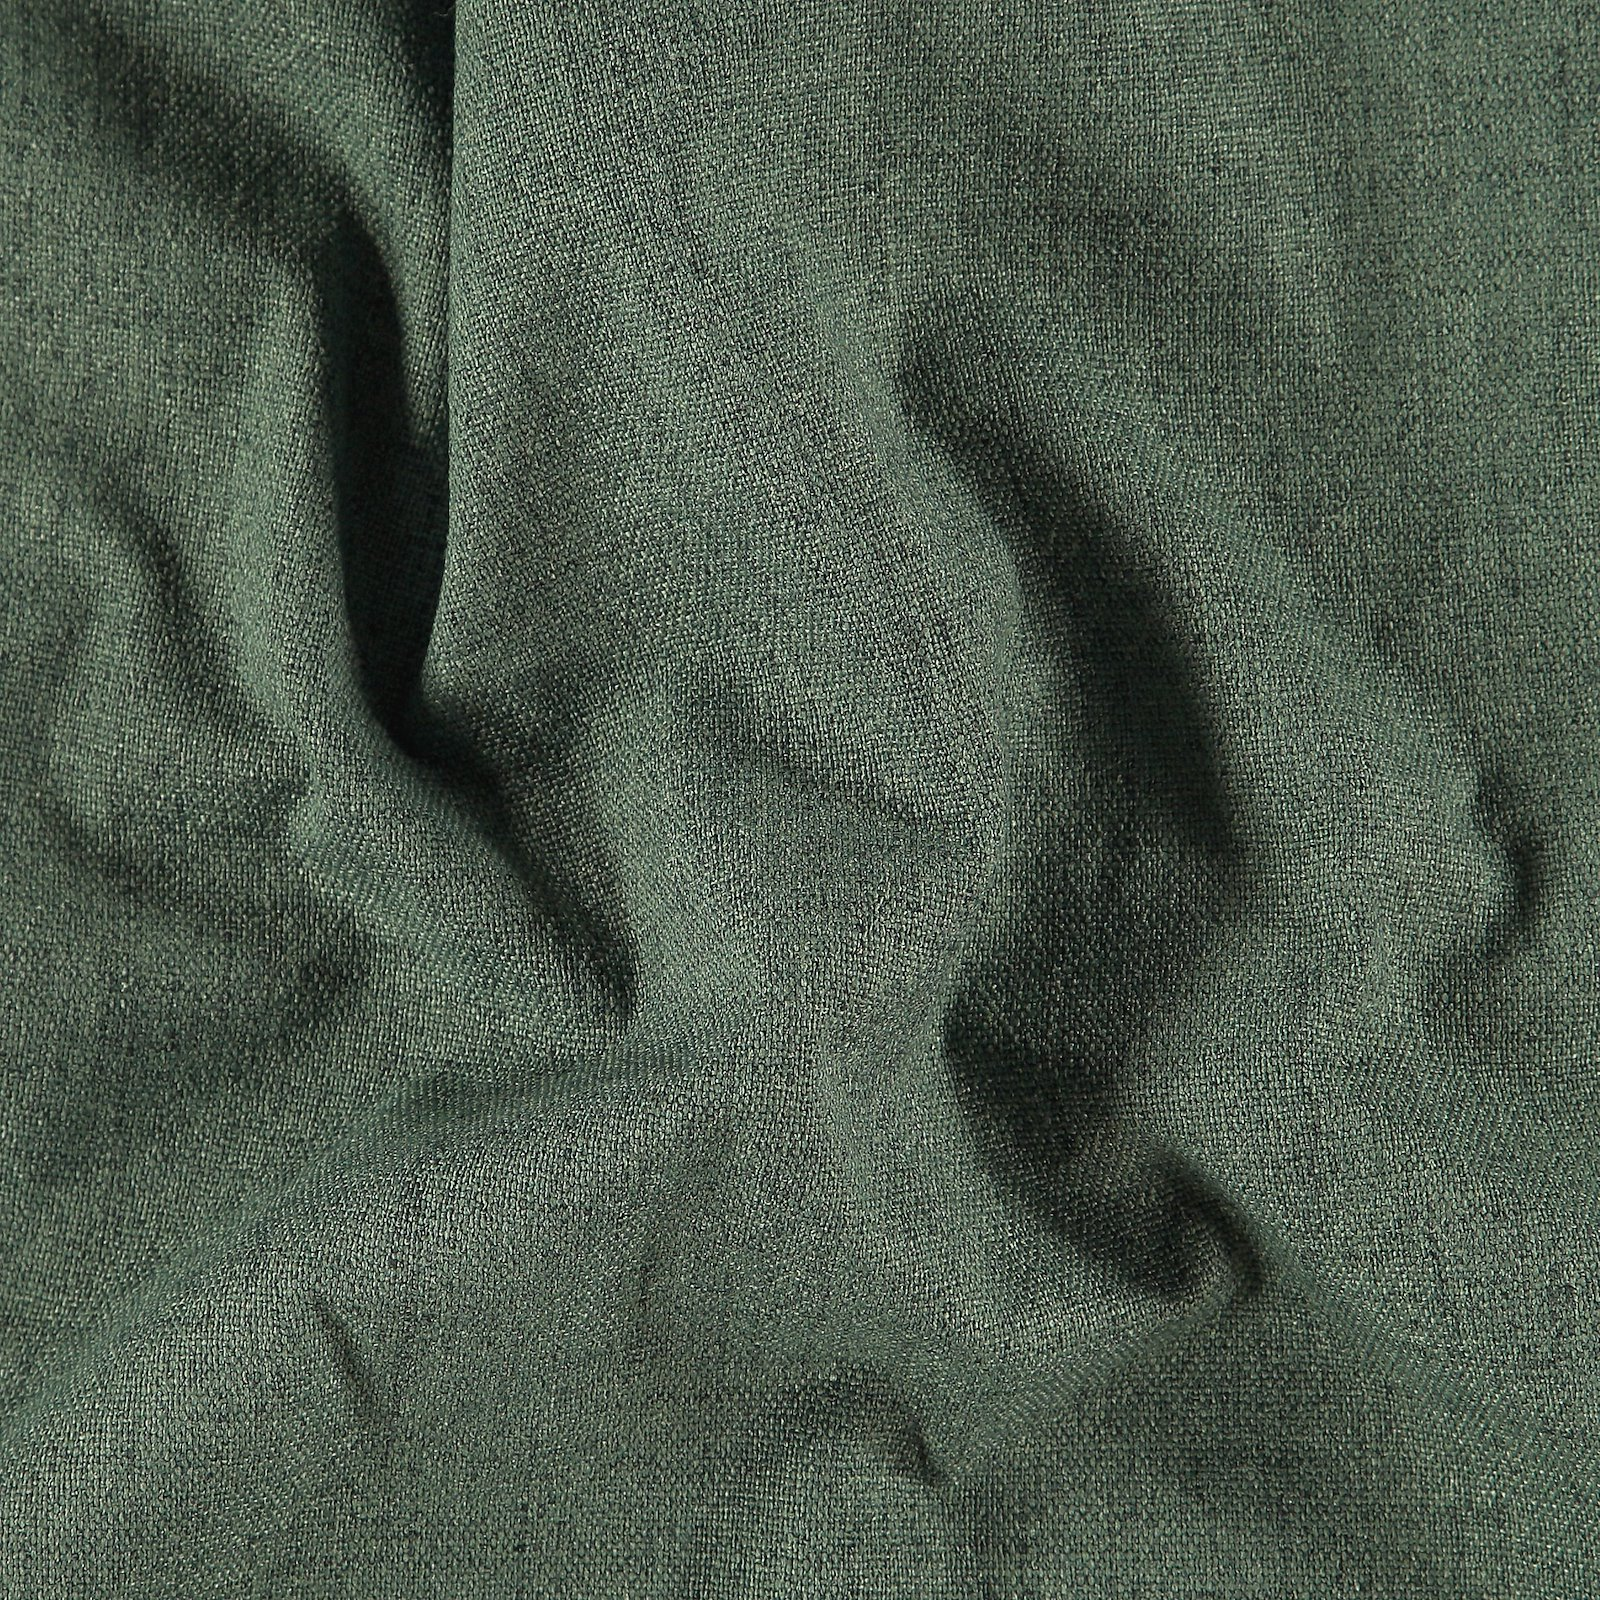 Upholstery fabric dark green w/backing 824087_pack